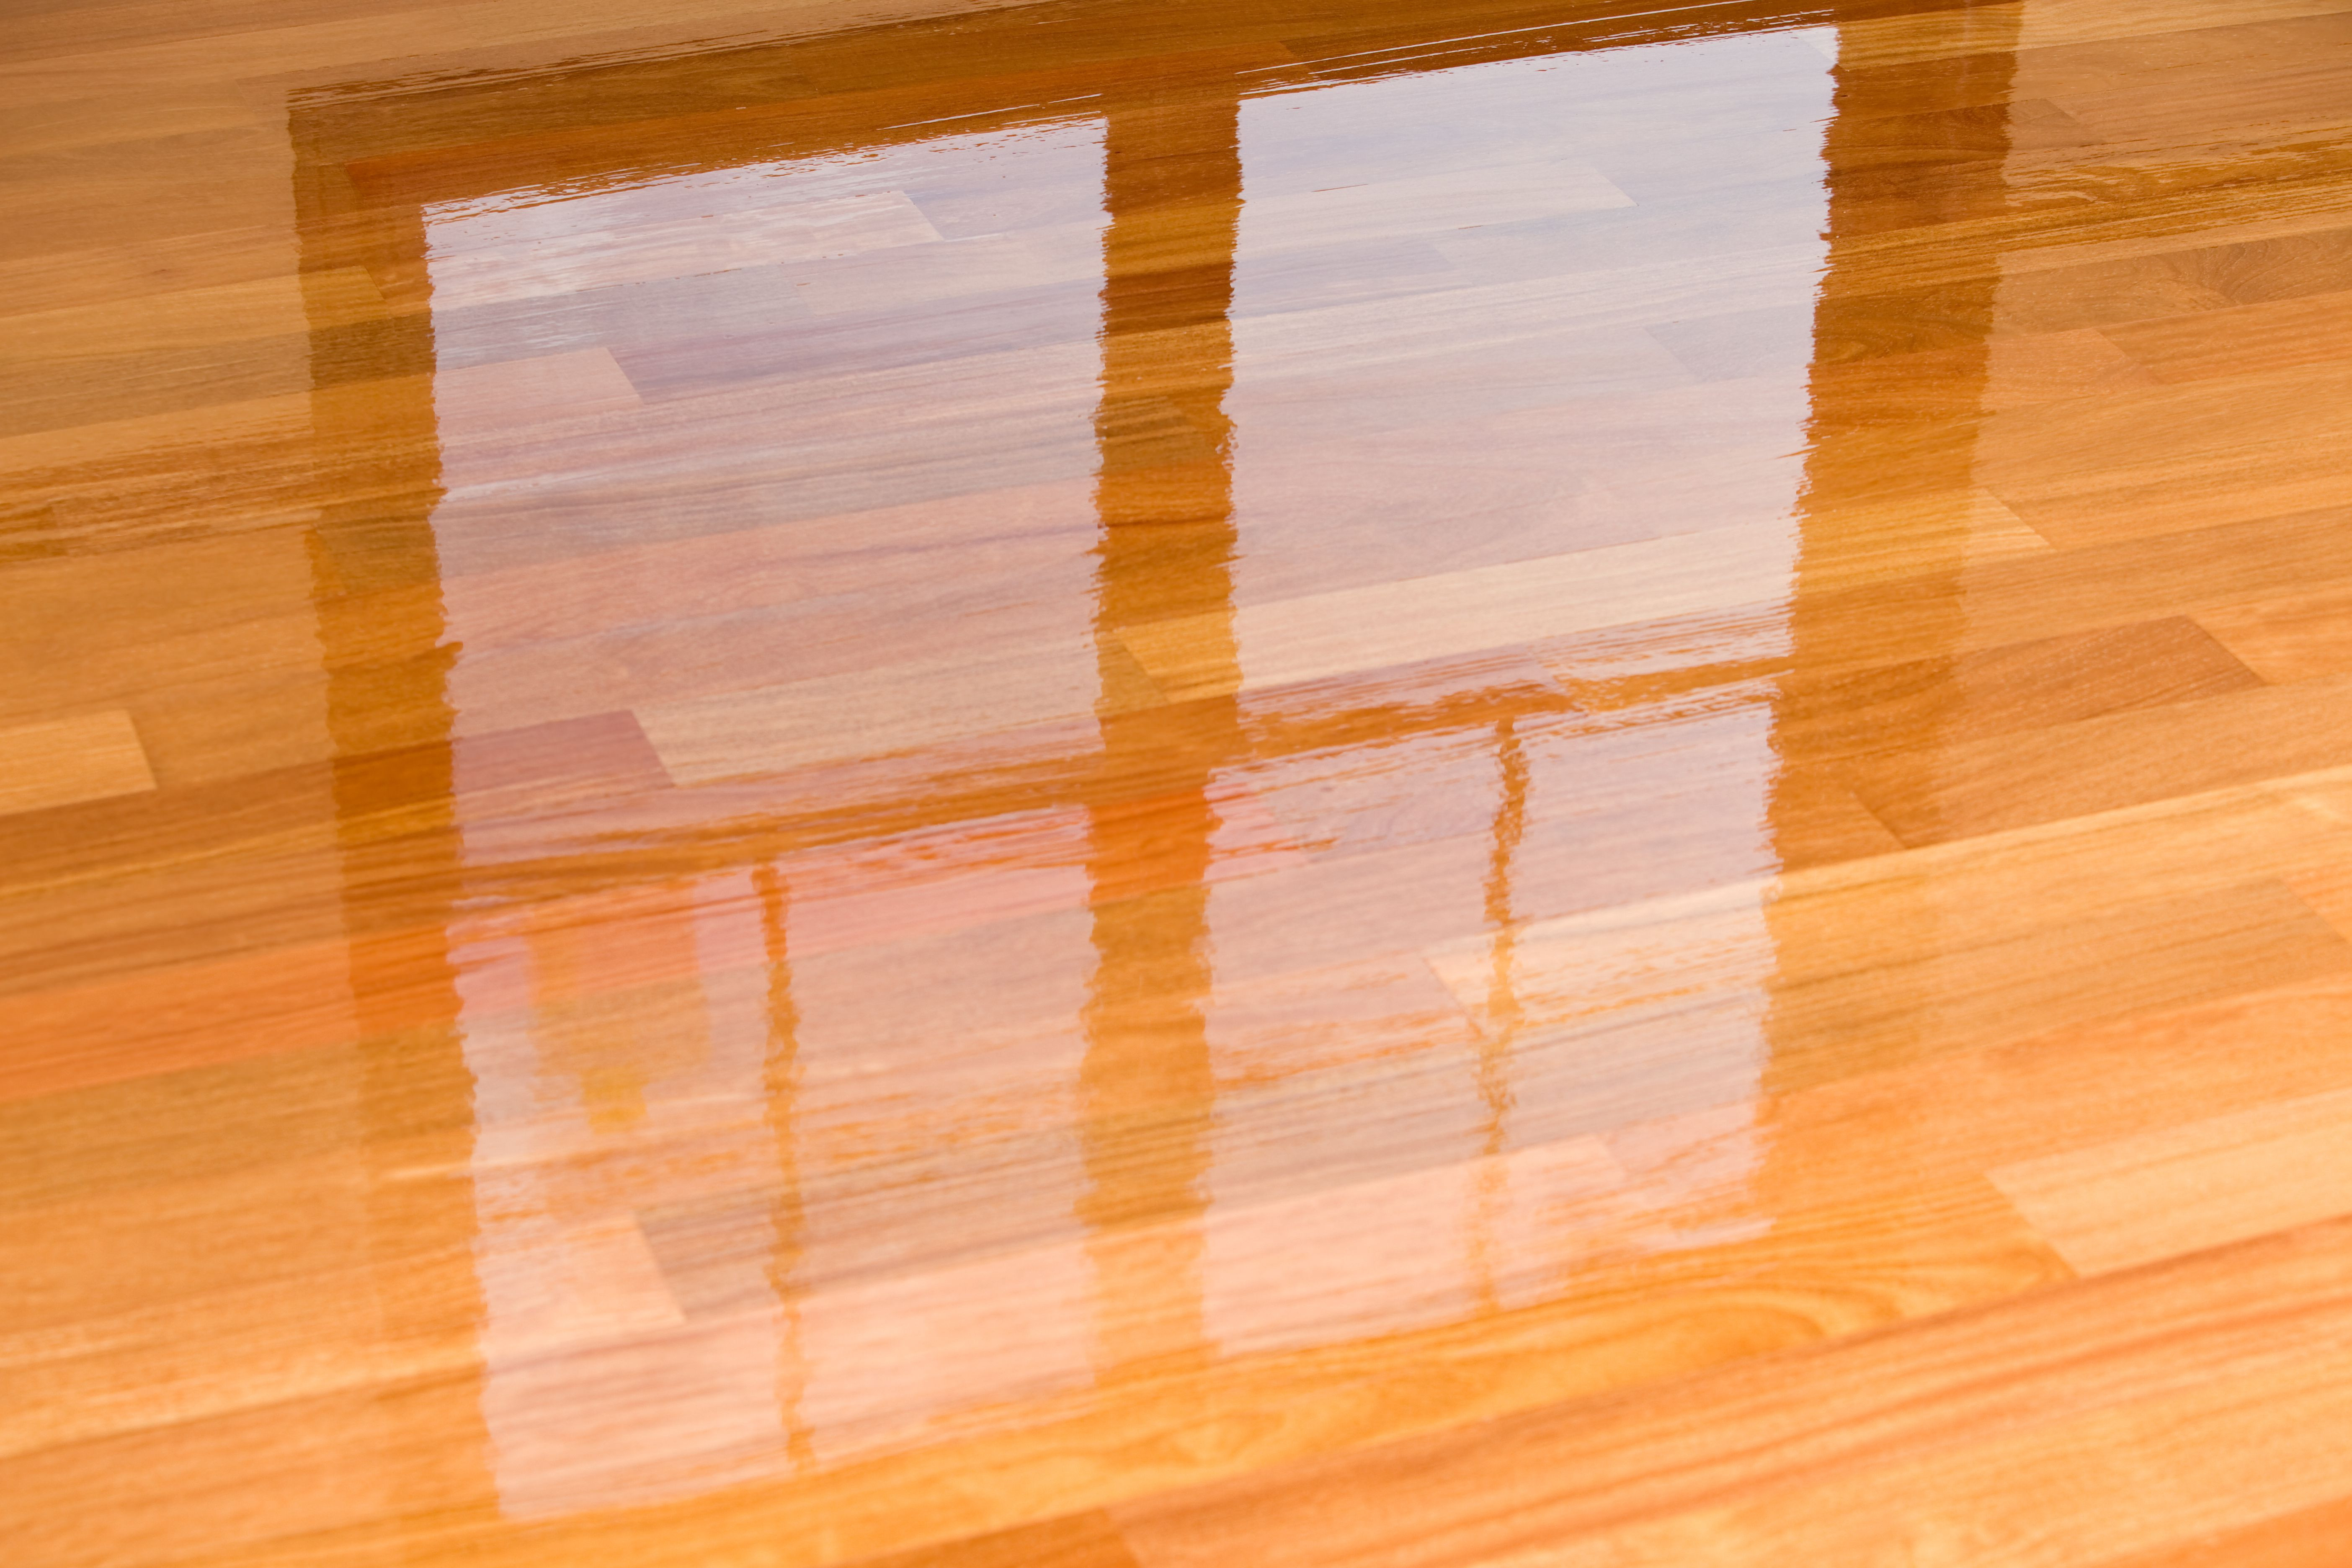 how to close gaps in hardwood floors of guide to laminate flooring water and damage repair inside wet polyurethane on new hardwood floor with window reflection 183846705 582e34da3df78c6f6a403968